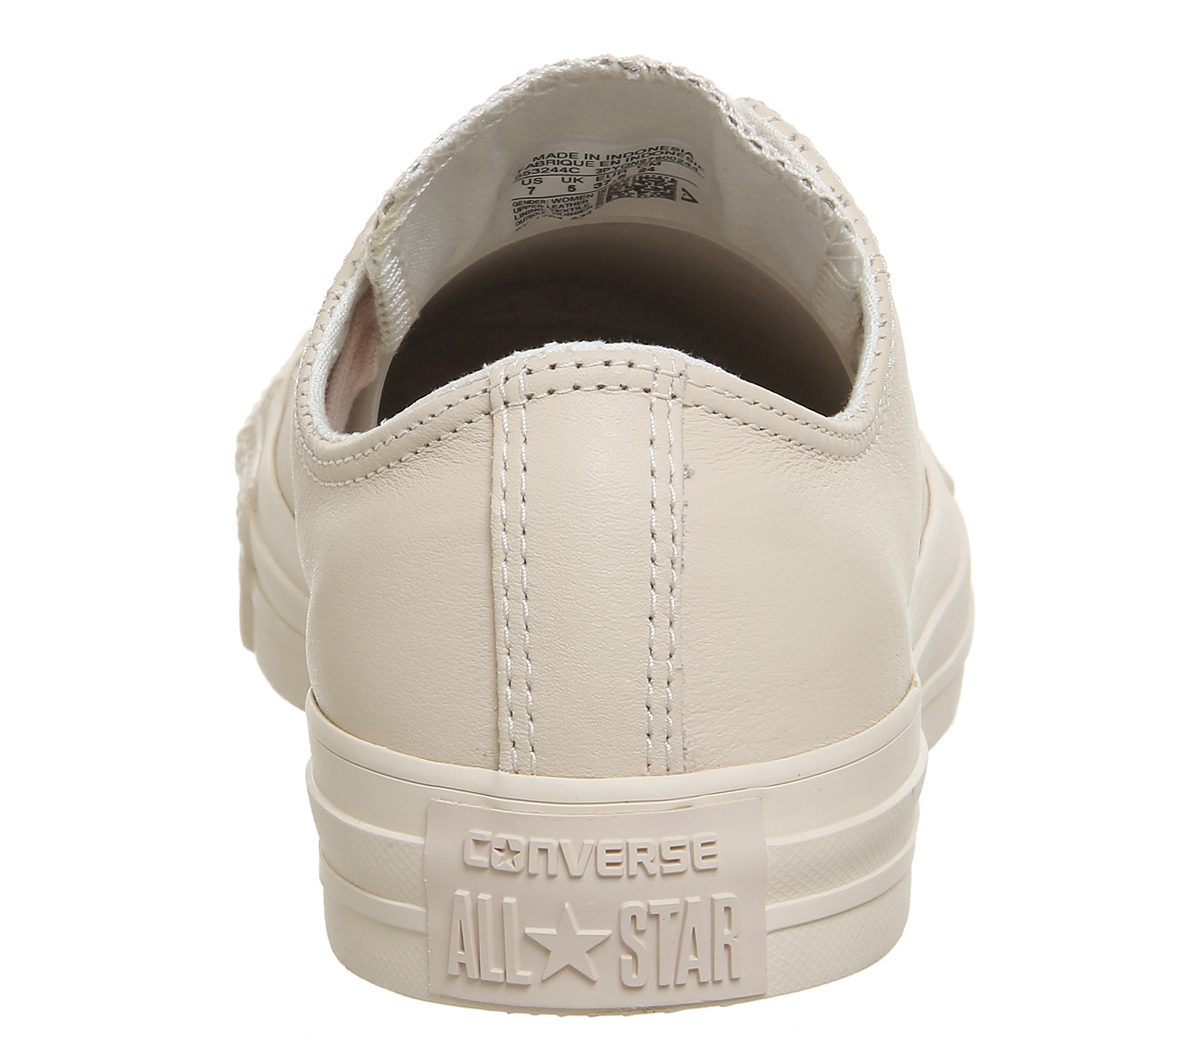 67fa2e830dab Sentinel Womens Converse All Star Low Leather Pastel Rose Tan Rose Gold  Trainers Shoes